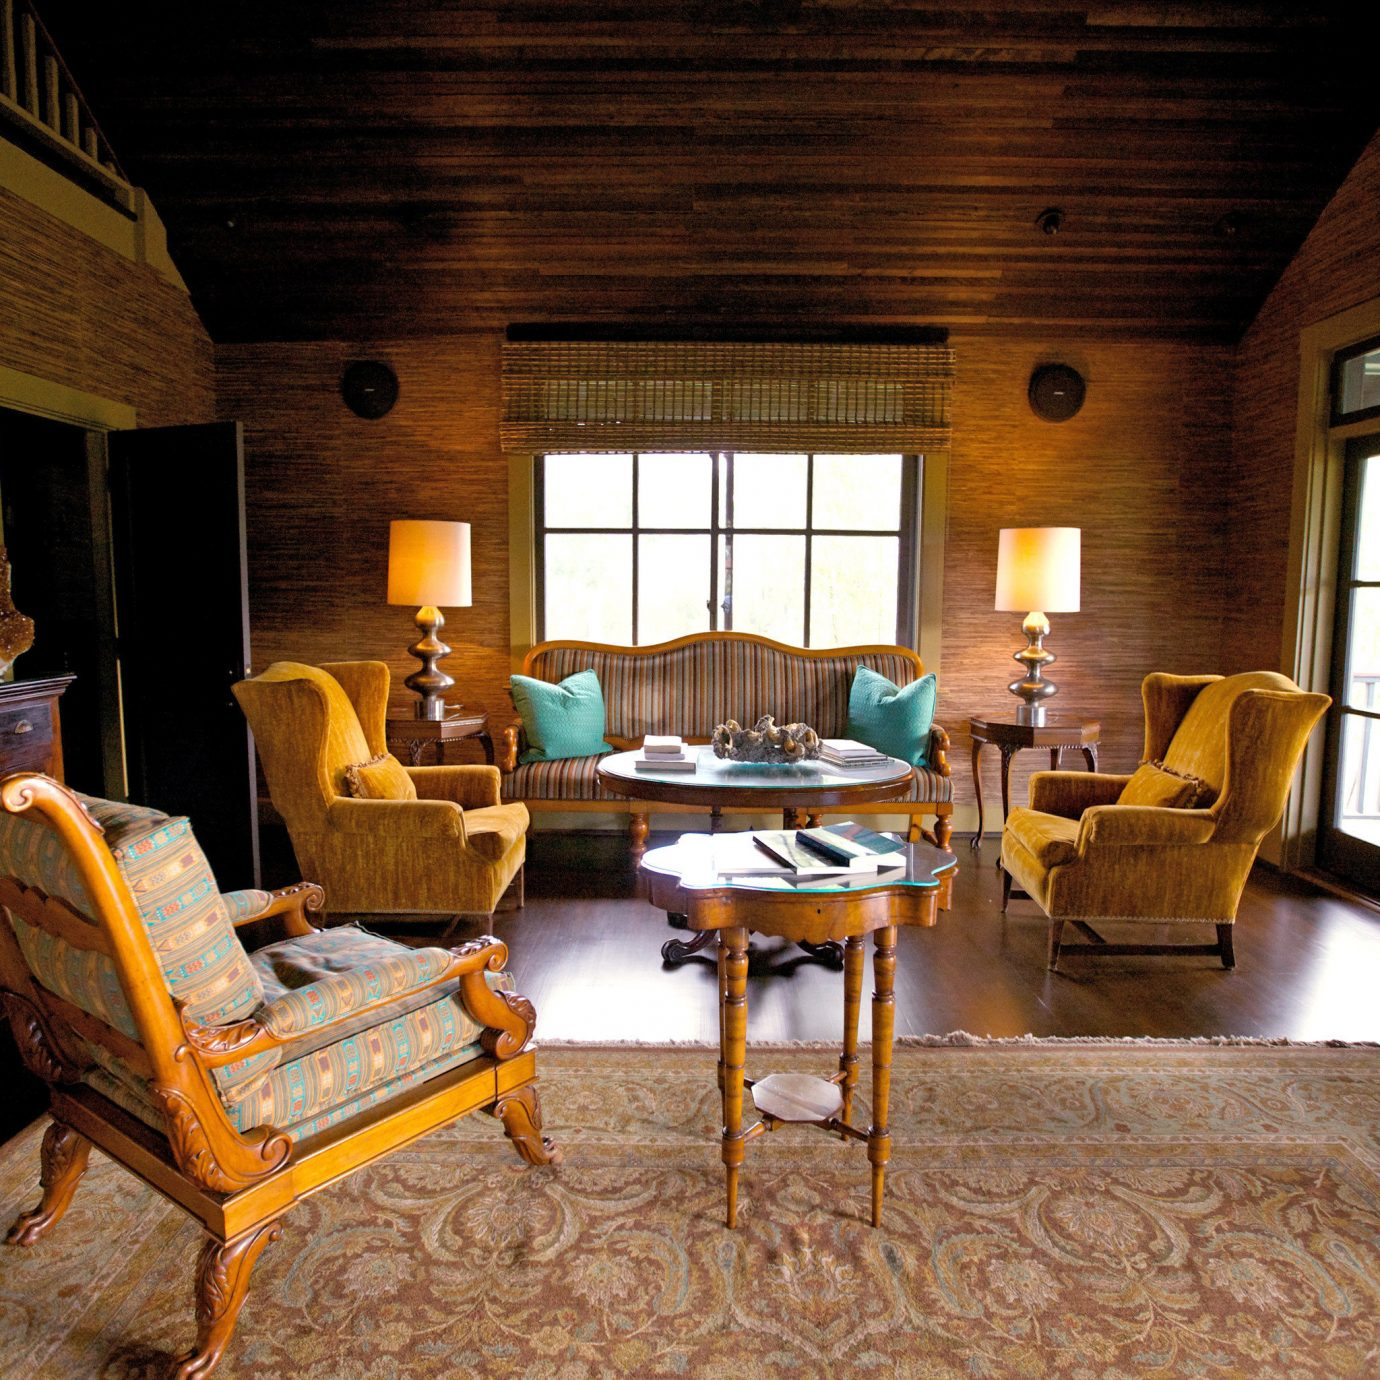 Beach Boutique Hotels Eco Hotels Lounge Luxury Travel Modern Romance chair property building house home living room cottage log cabin hardwood farmhouse Villa mansion